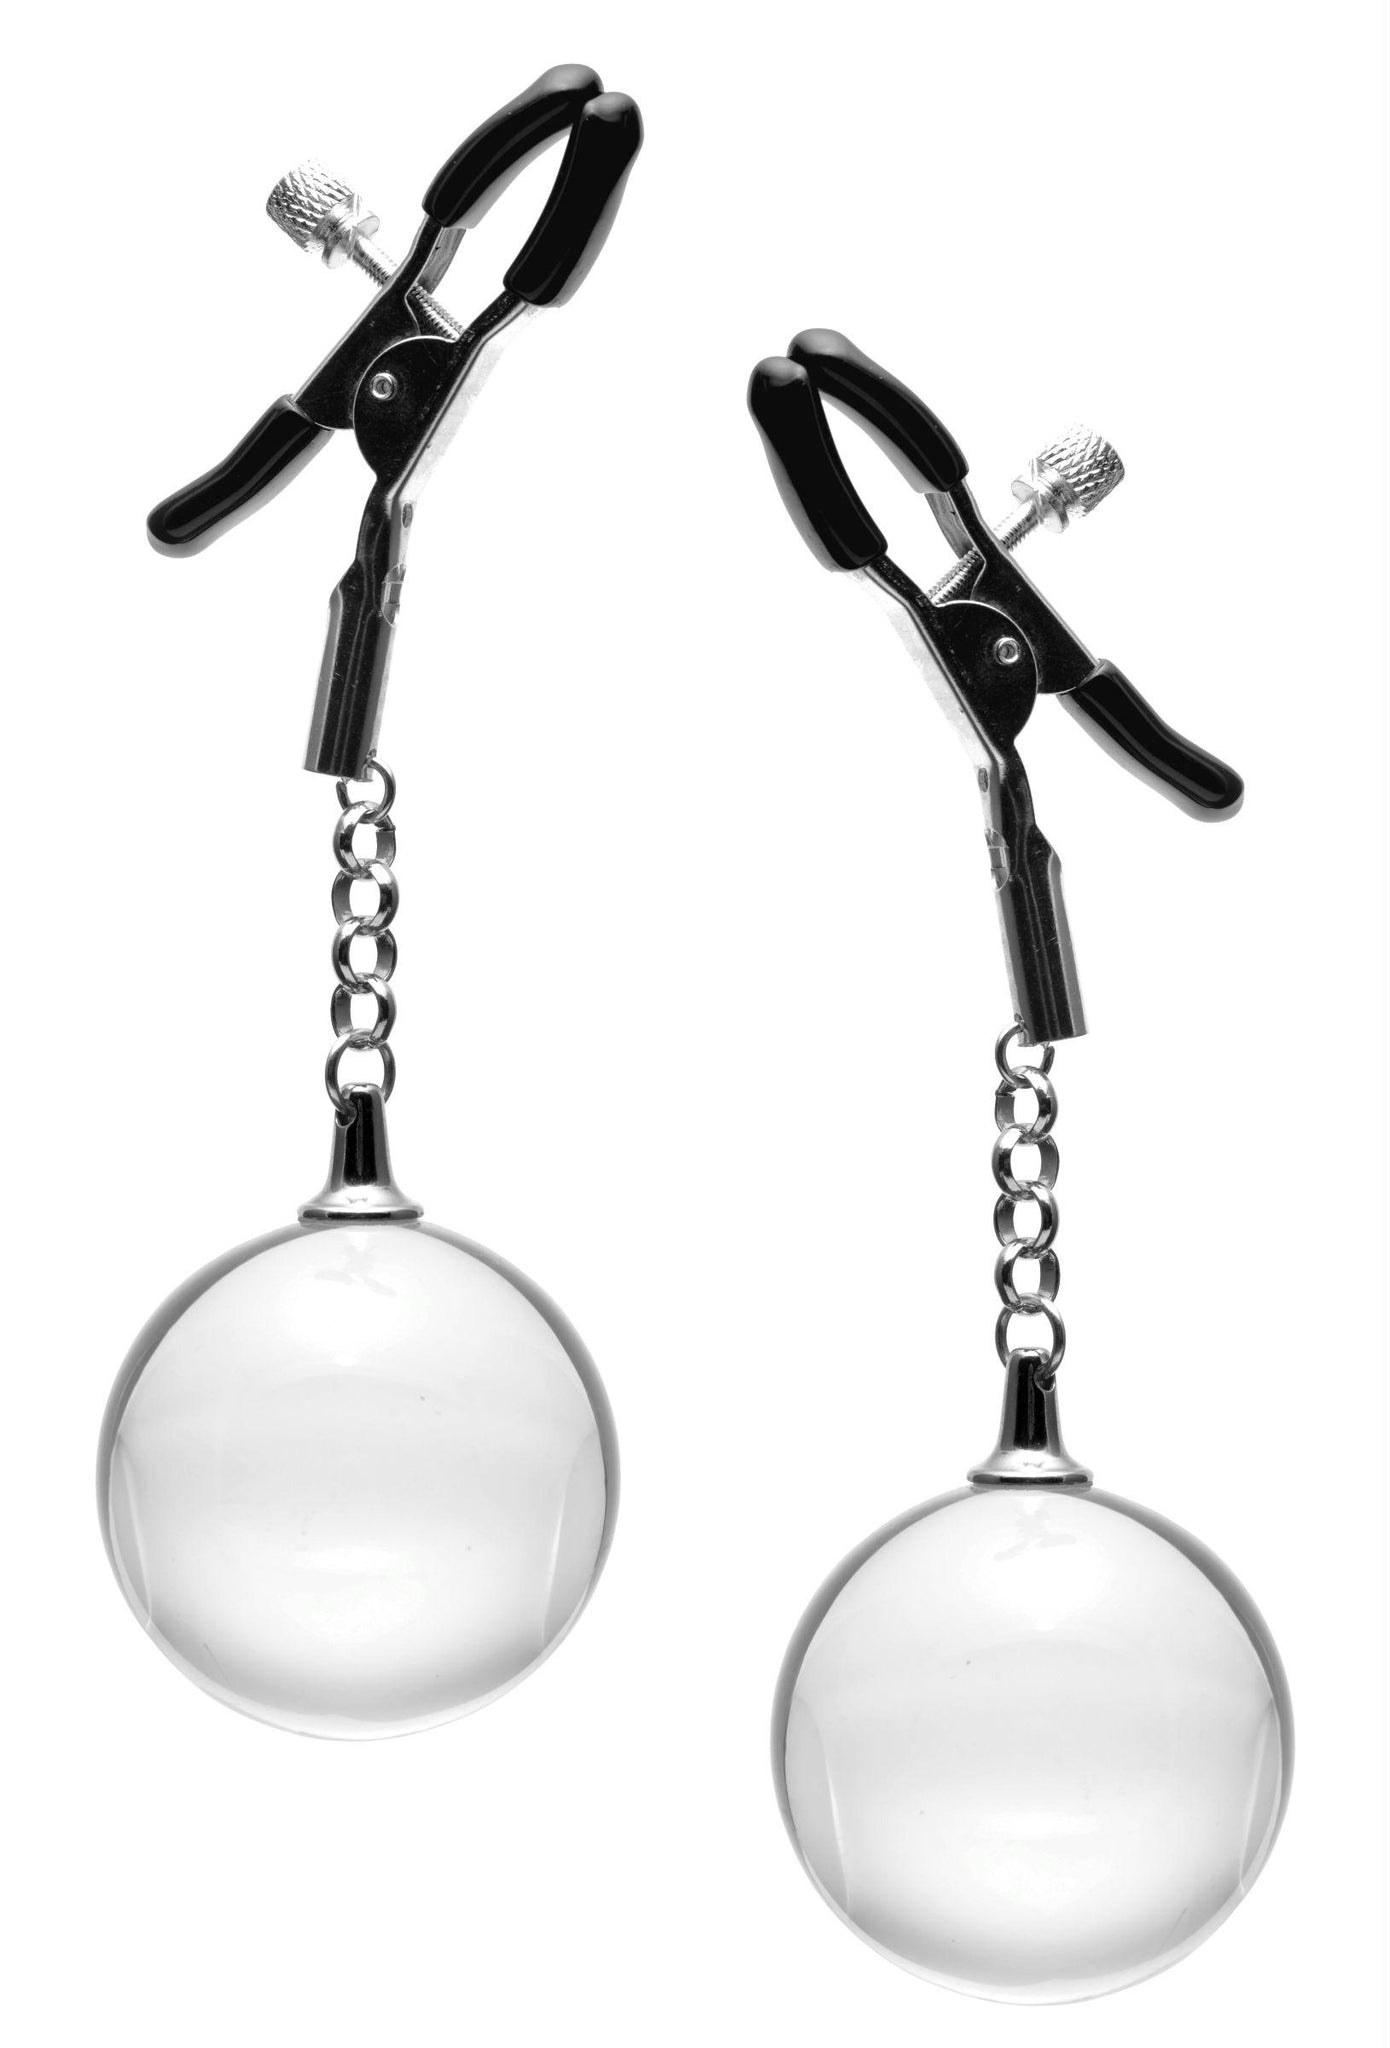 Spheres Adjustable Nipple Clamps with Weighted Clear Orbs